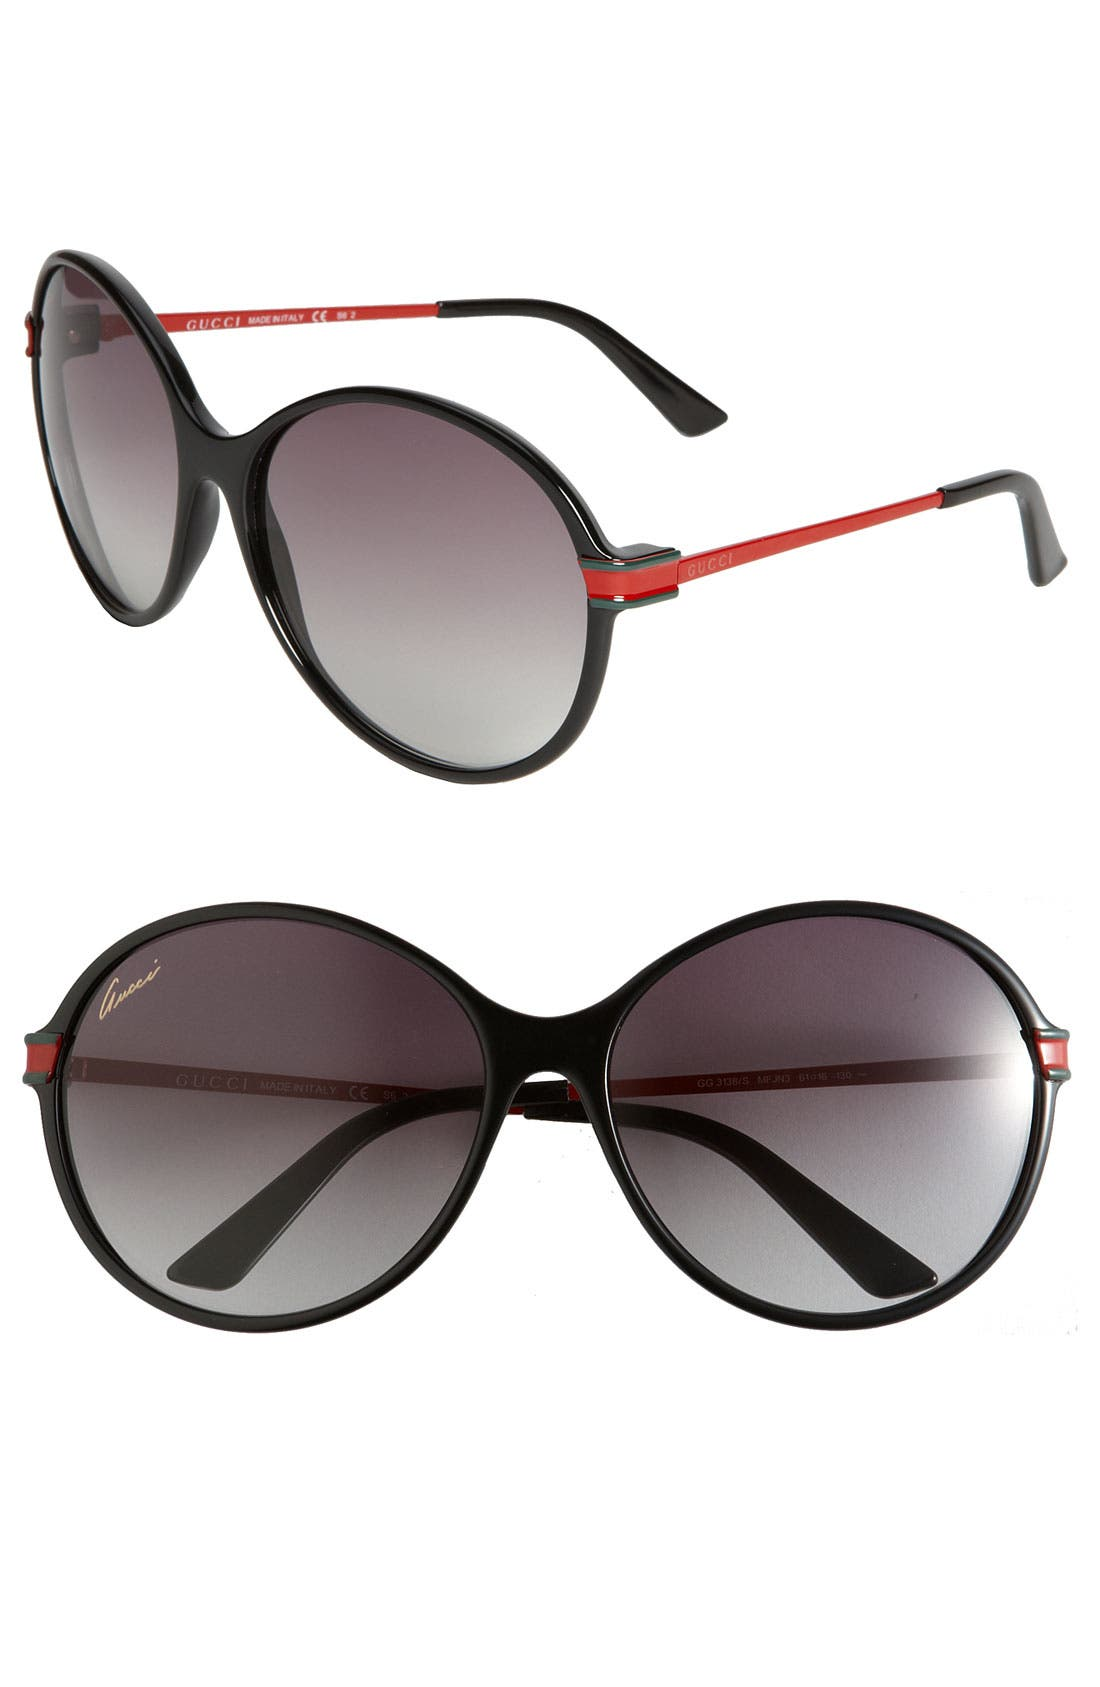 Alternate Image 1 Selected - Gucci Oversized Round Frame Sunglasses